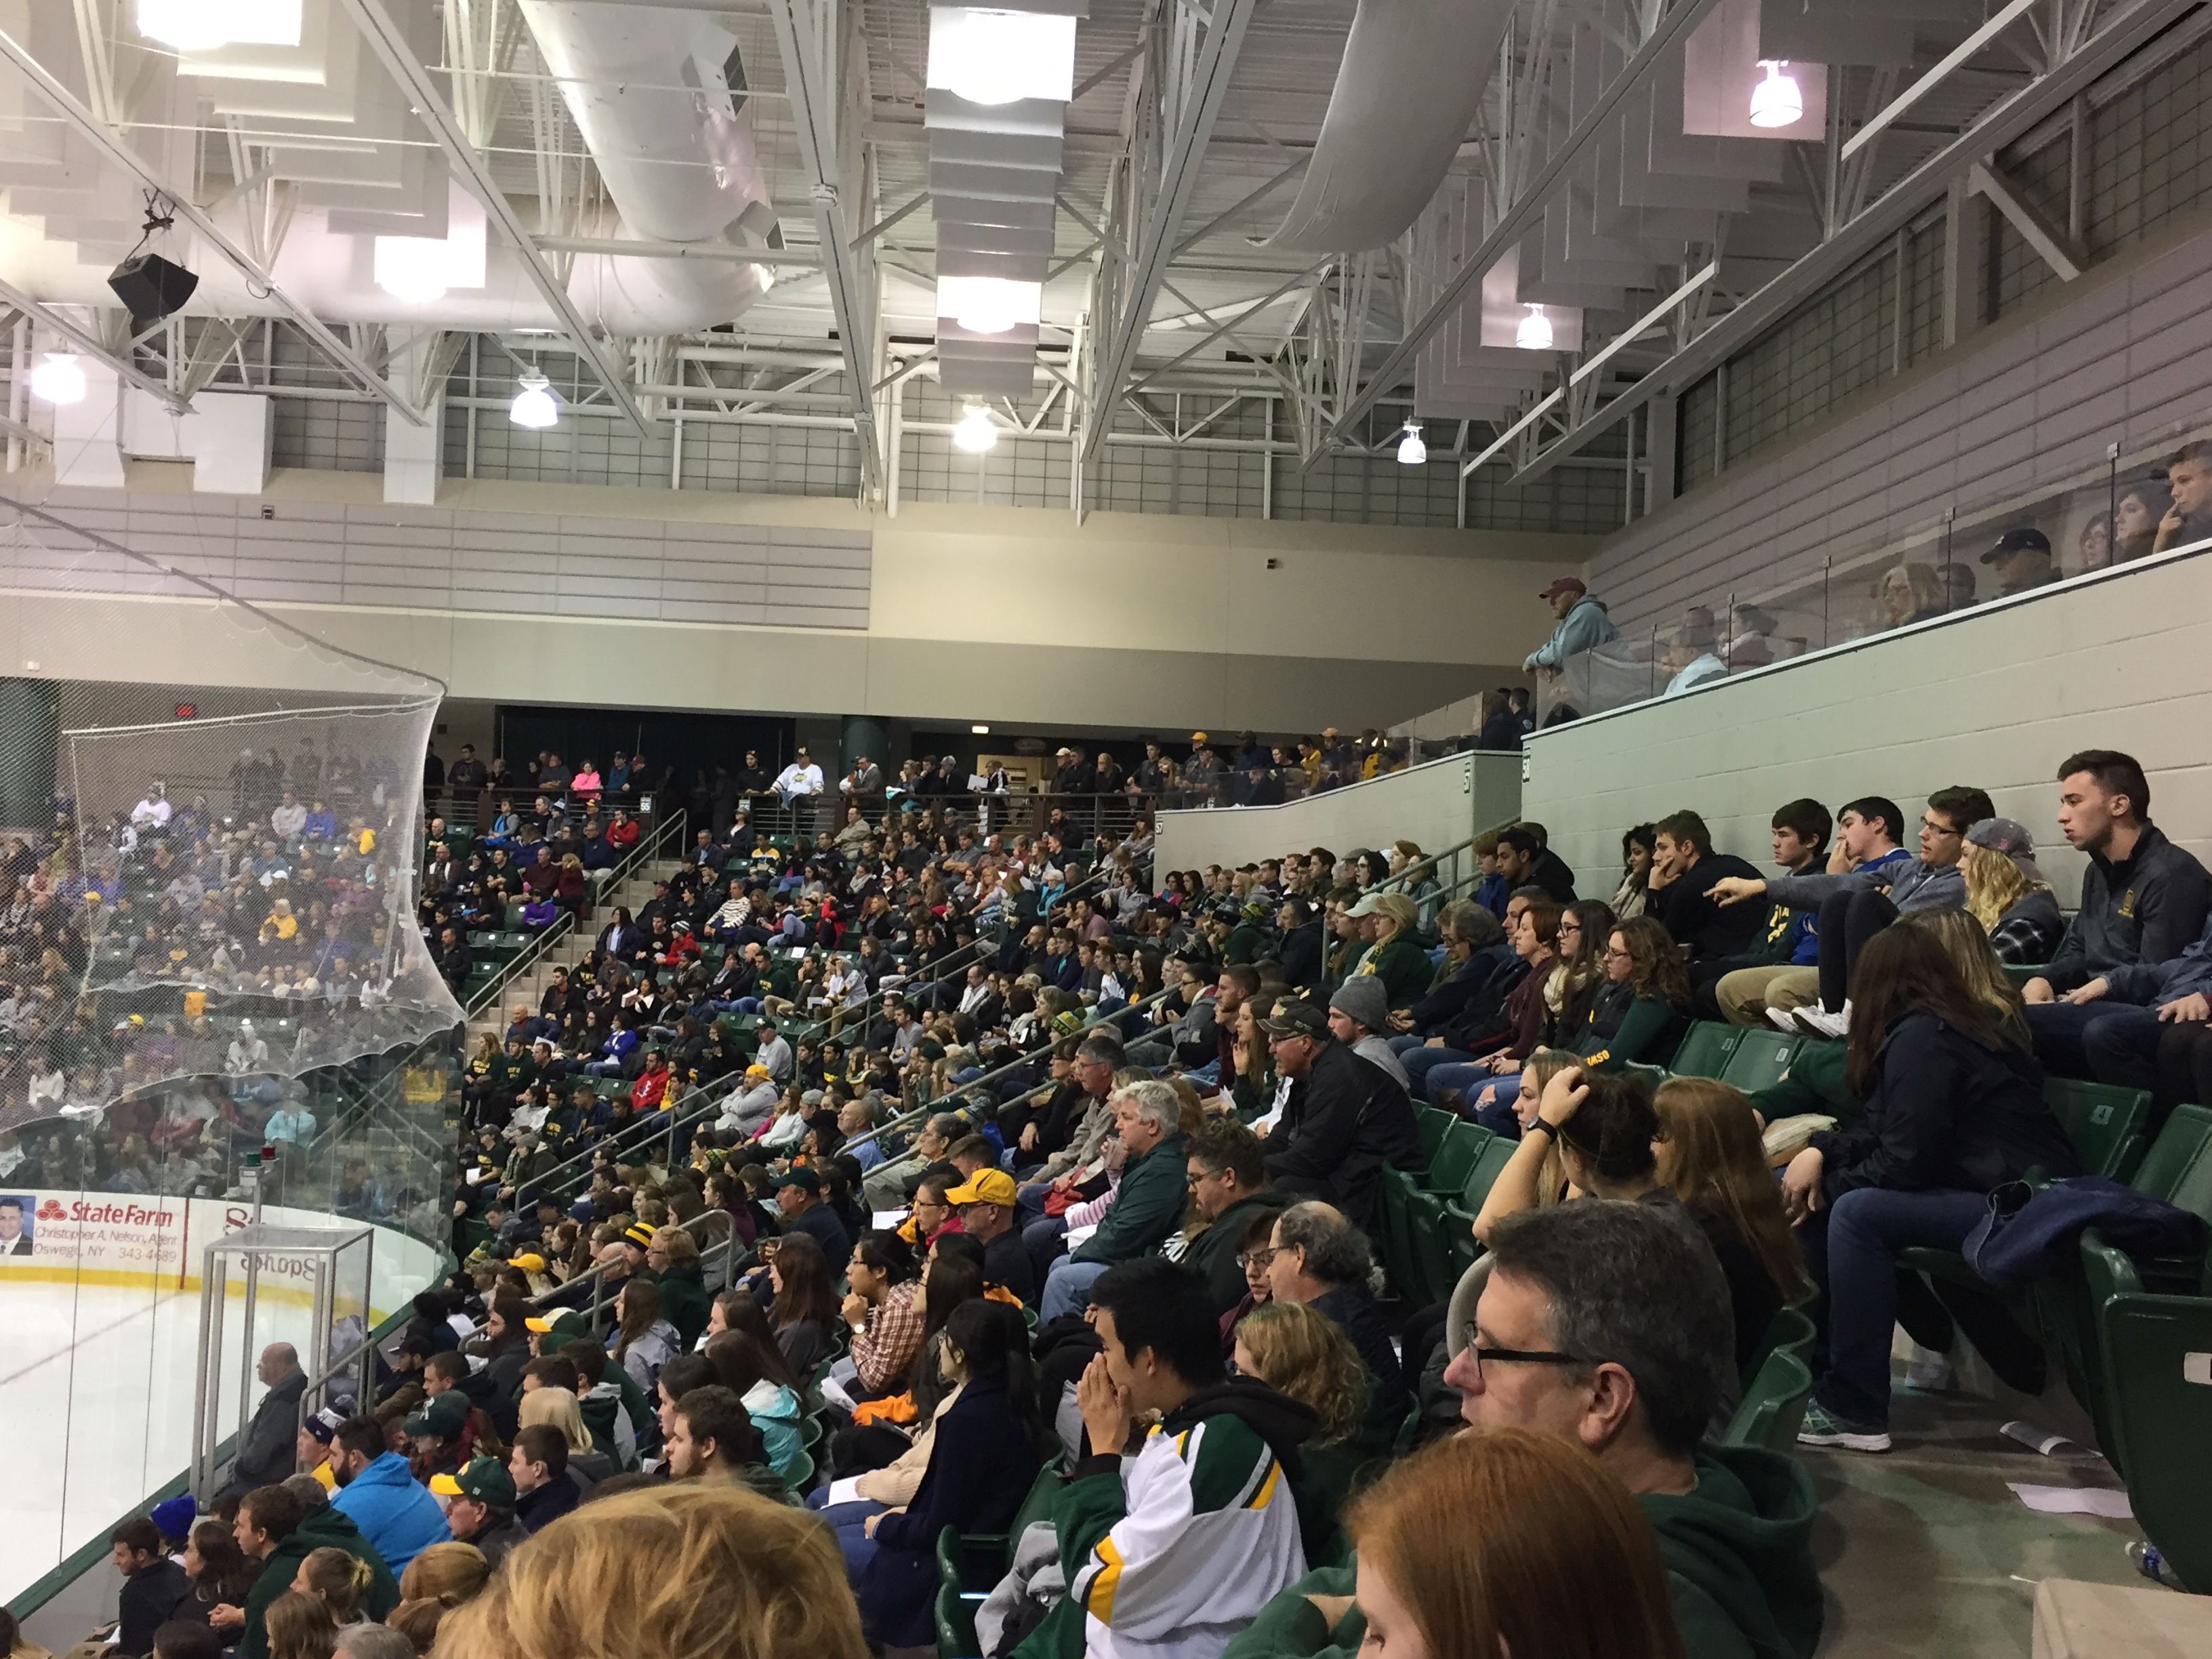 There was barely a single seat open during the men's ice hockey game